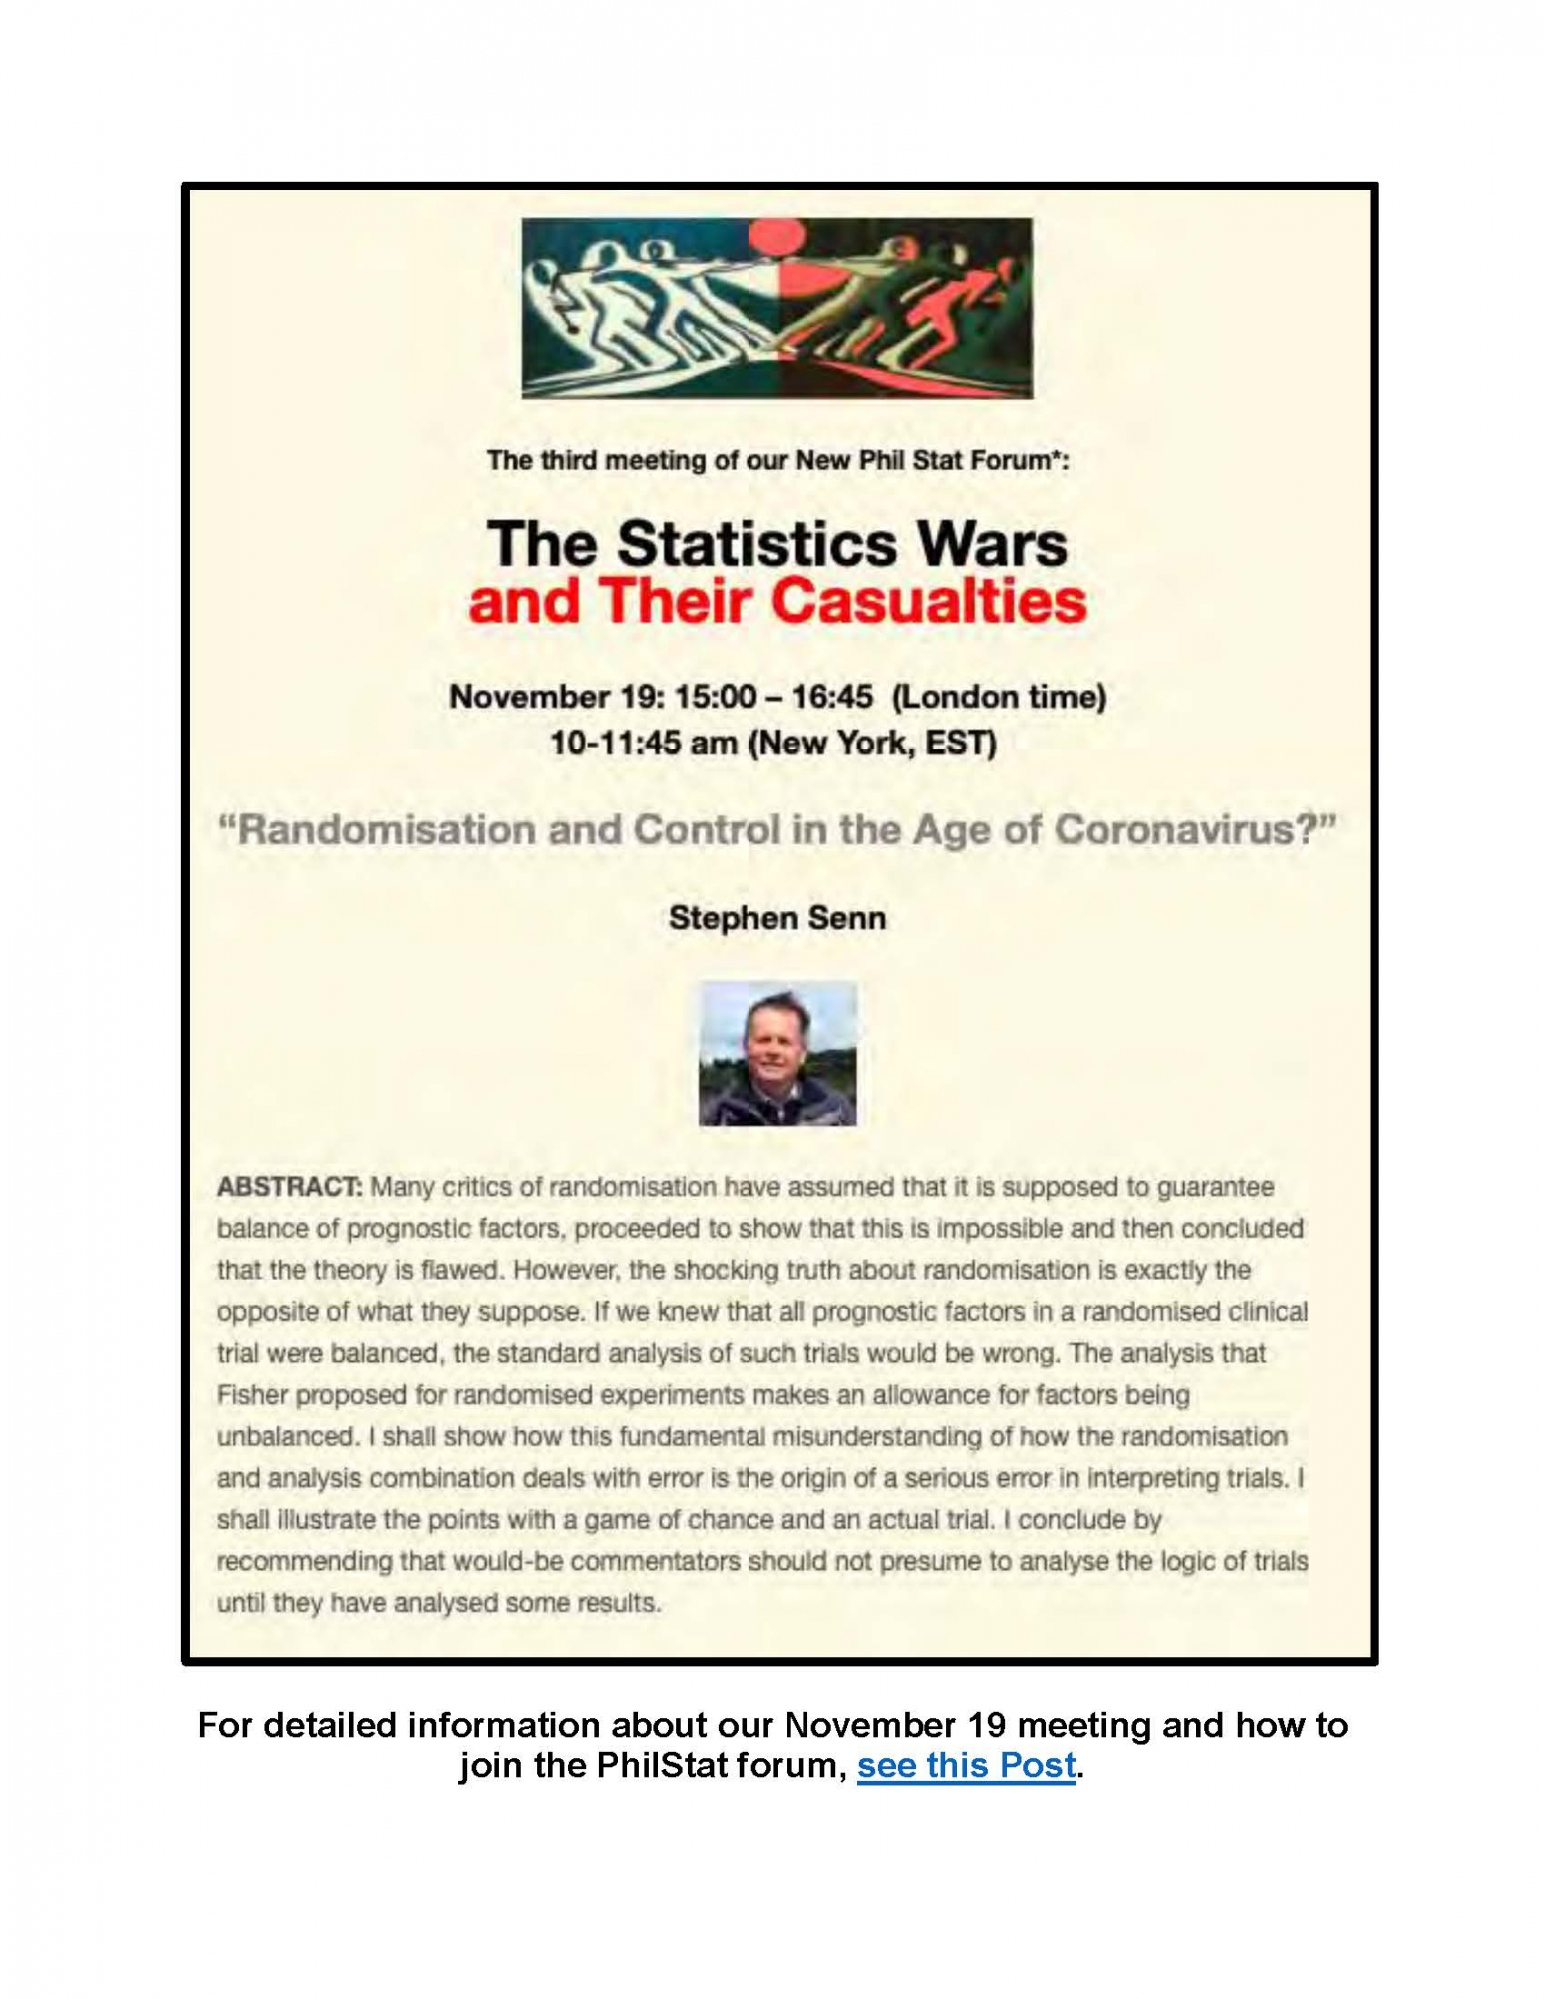 poster promoting CfP: Strategic Justice, Conventions, and Game Theory